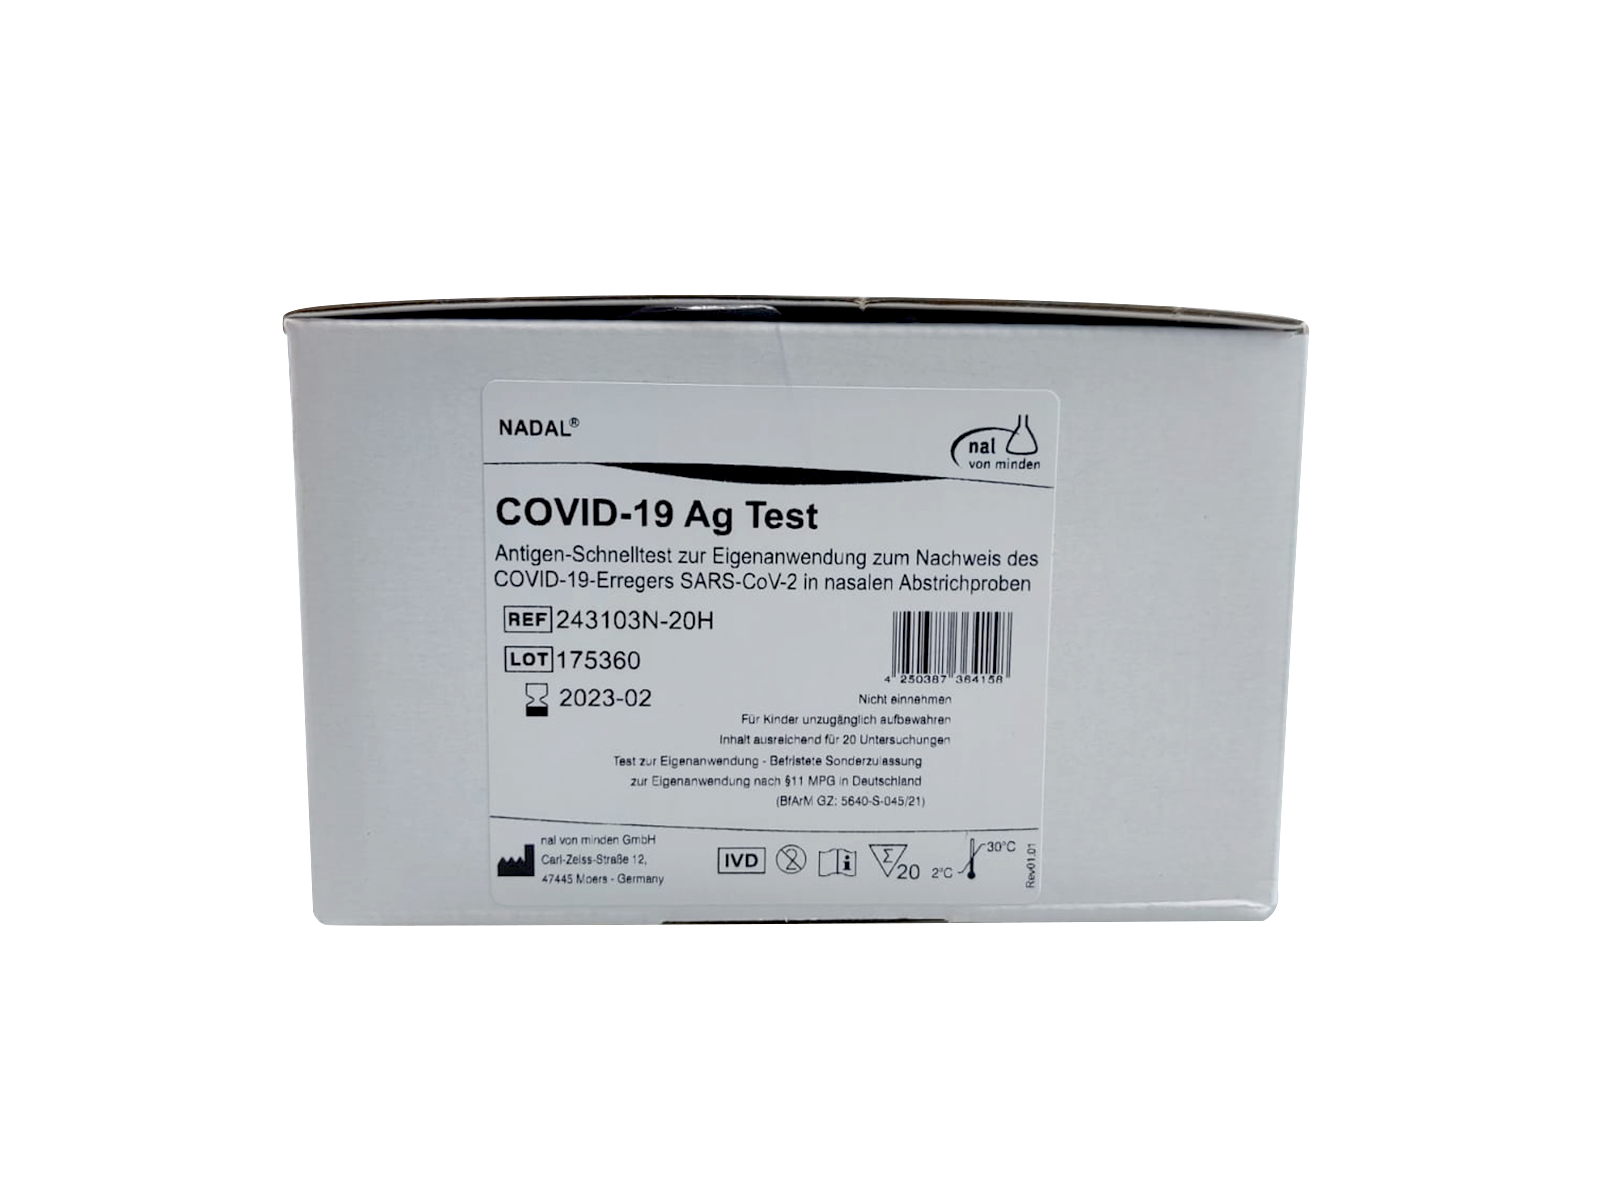 NADAL® Covid-19 Ag Selbsttest